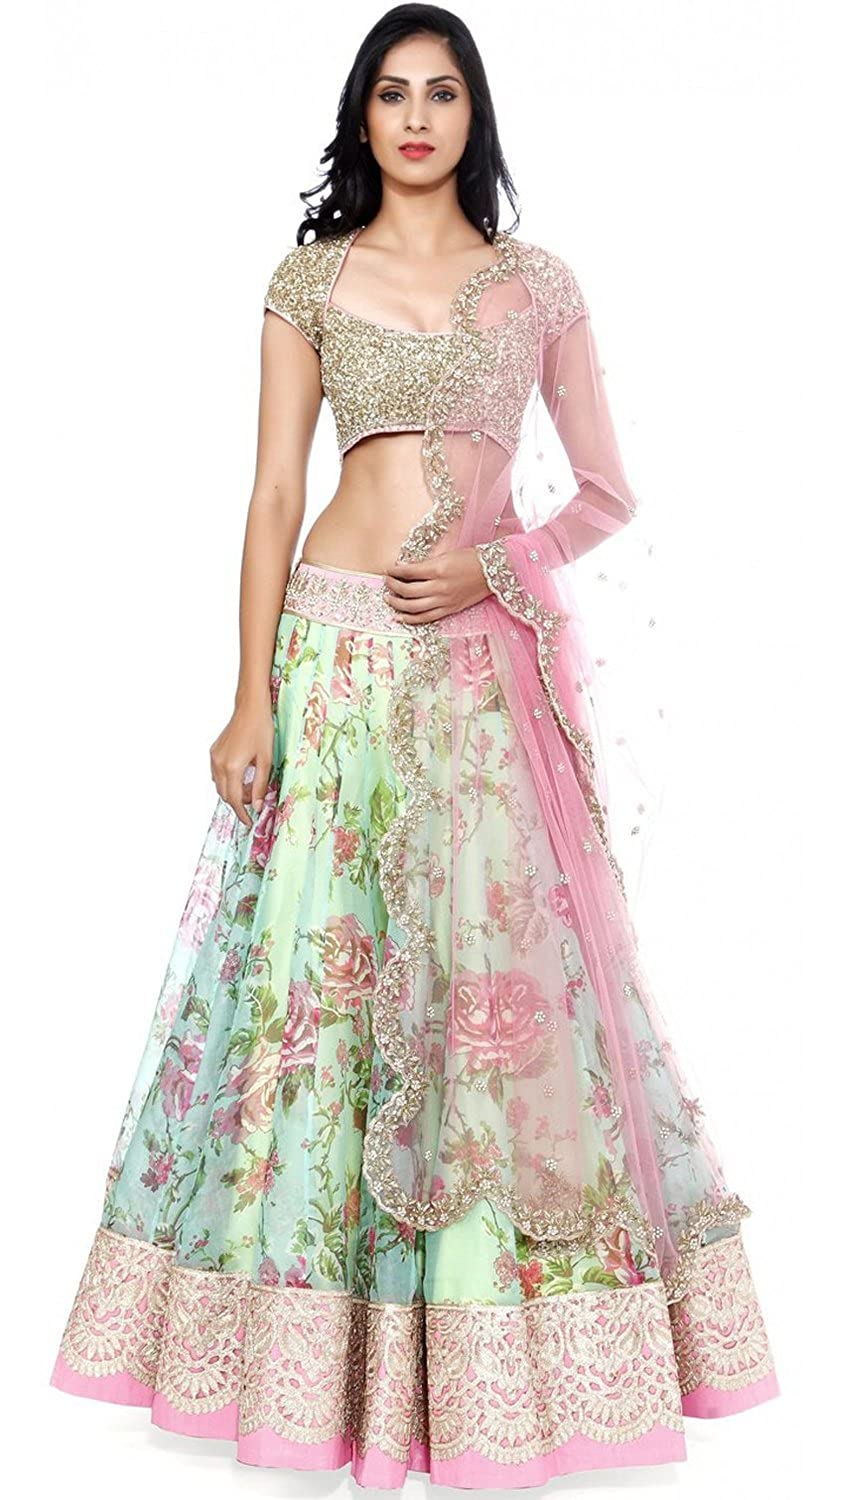 dbe7a2b8be Clickedia Women's Net Lehenga (Fogg White Pink Lehenga_Free Size_White Pink):  Amazon.in: Clothing & Accessories